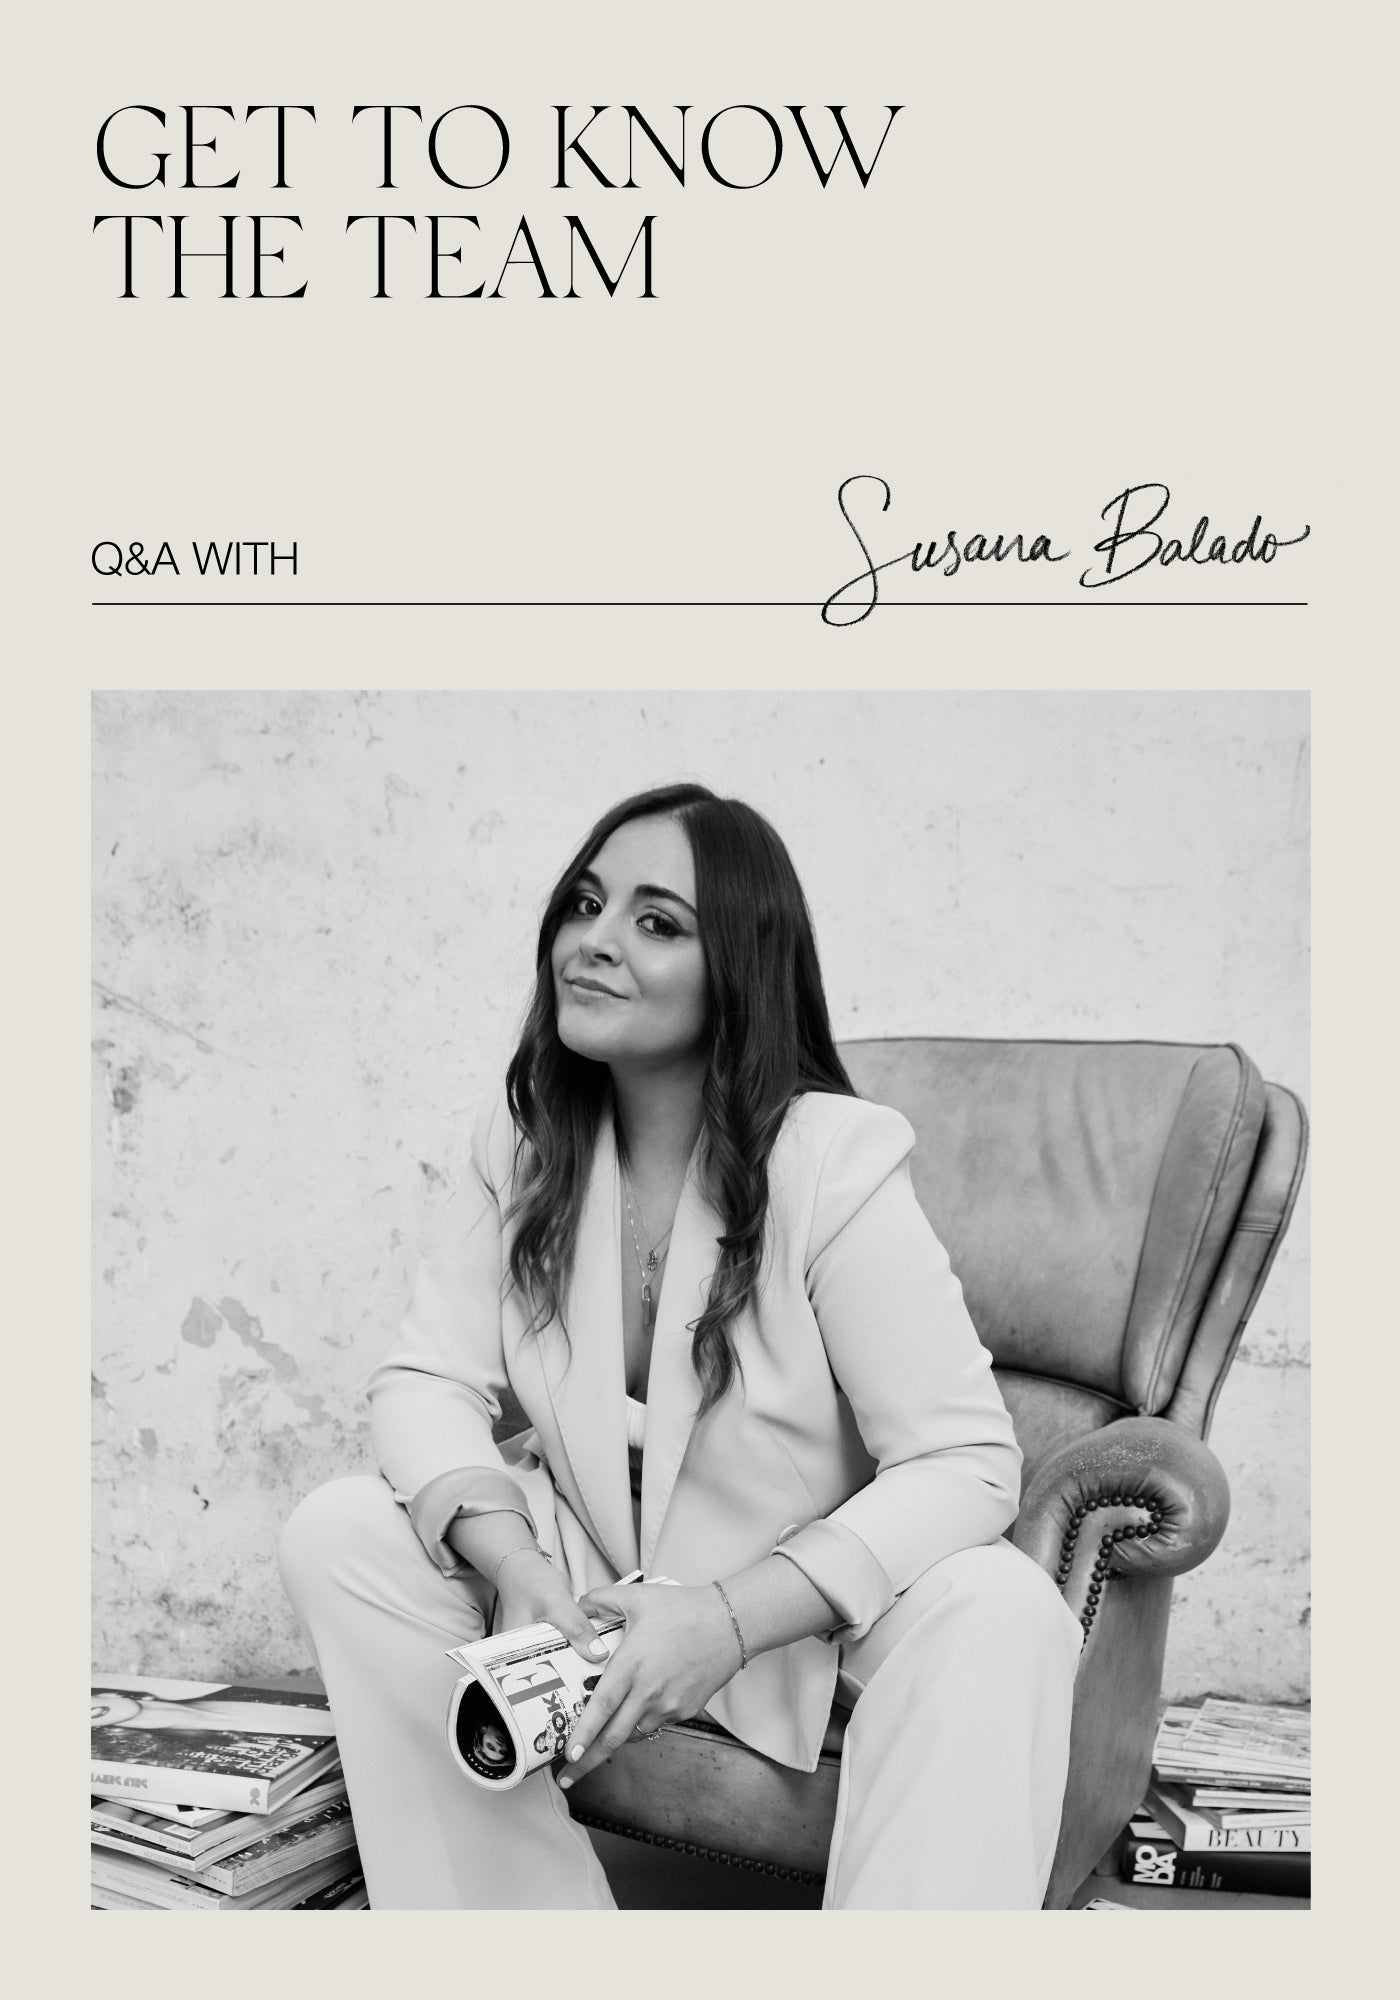 Get To Know the team! Q&A with Susana